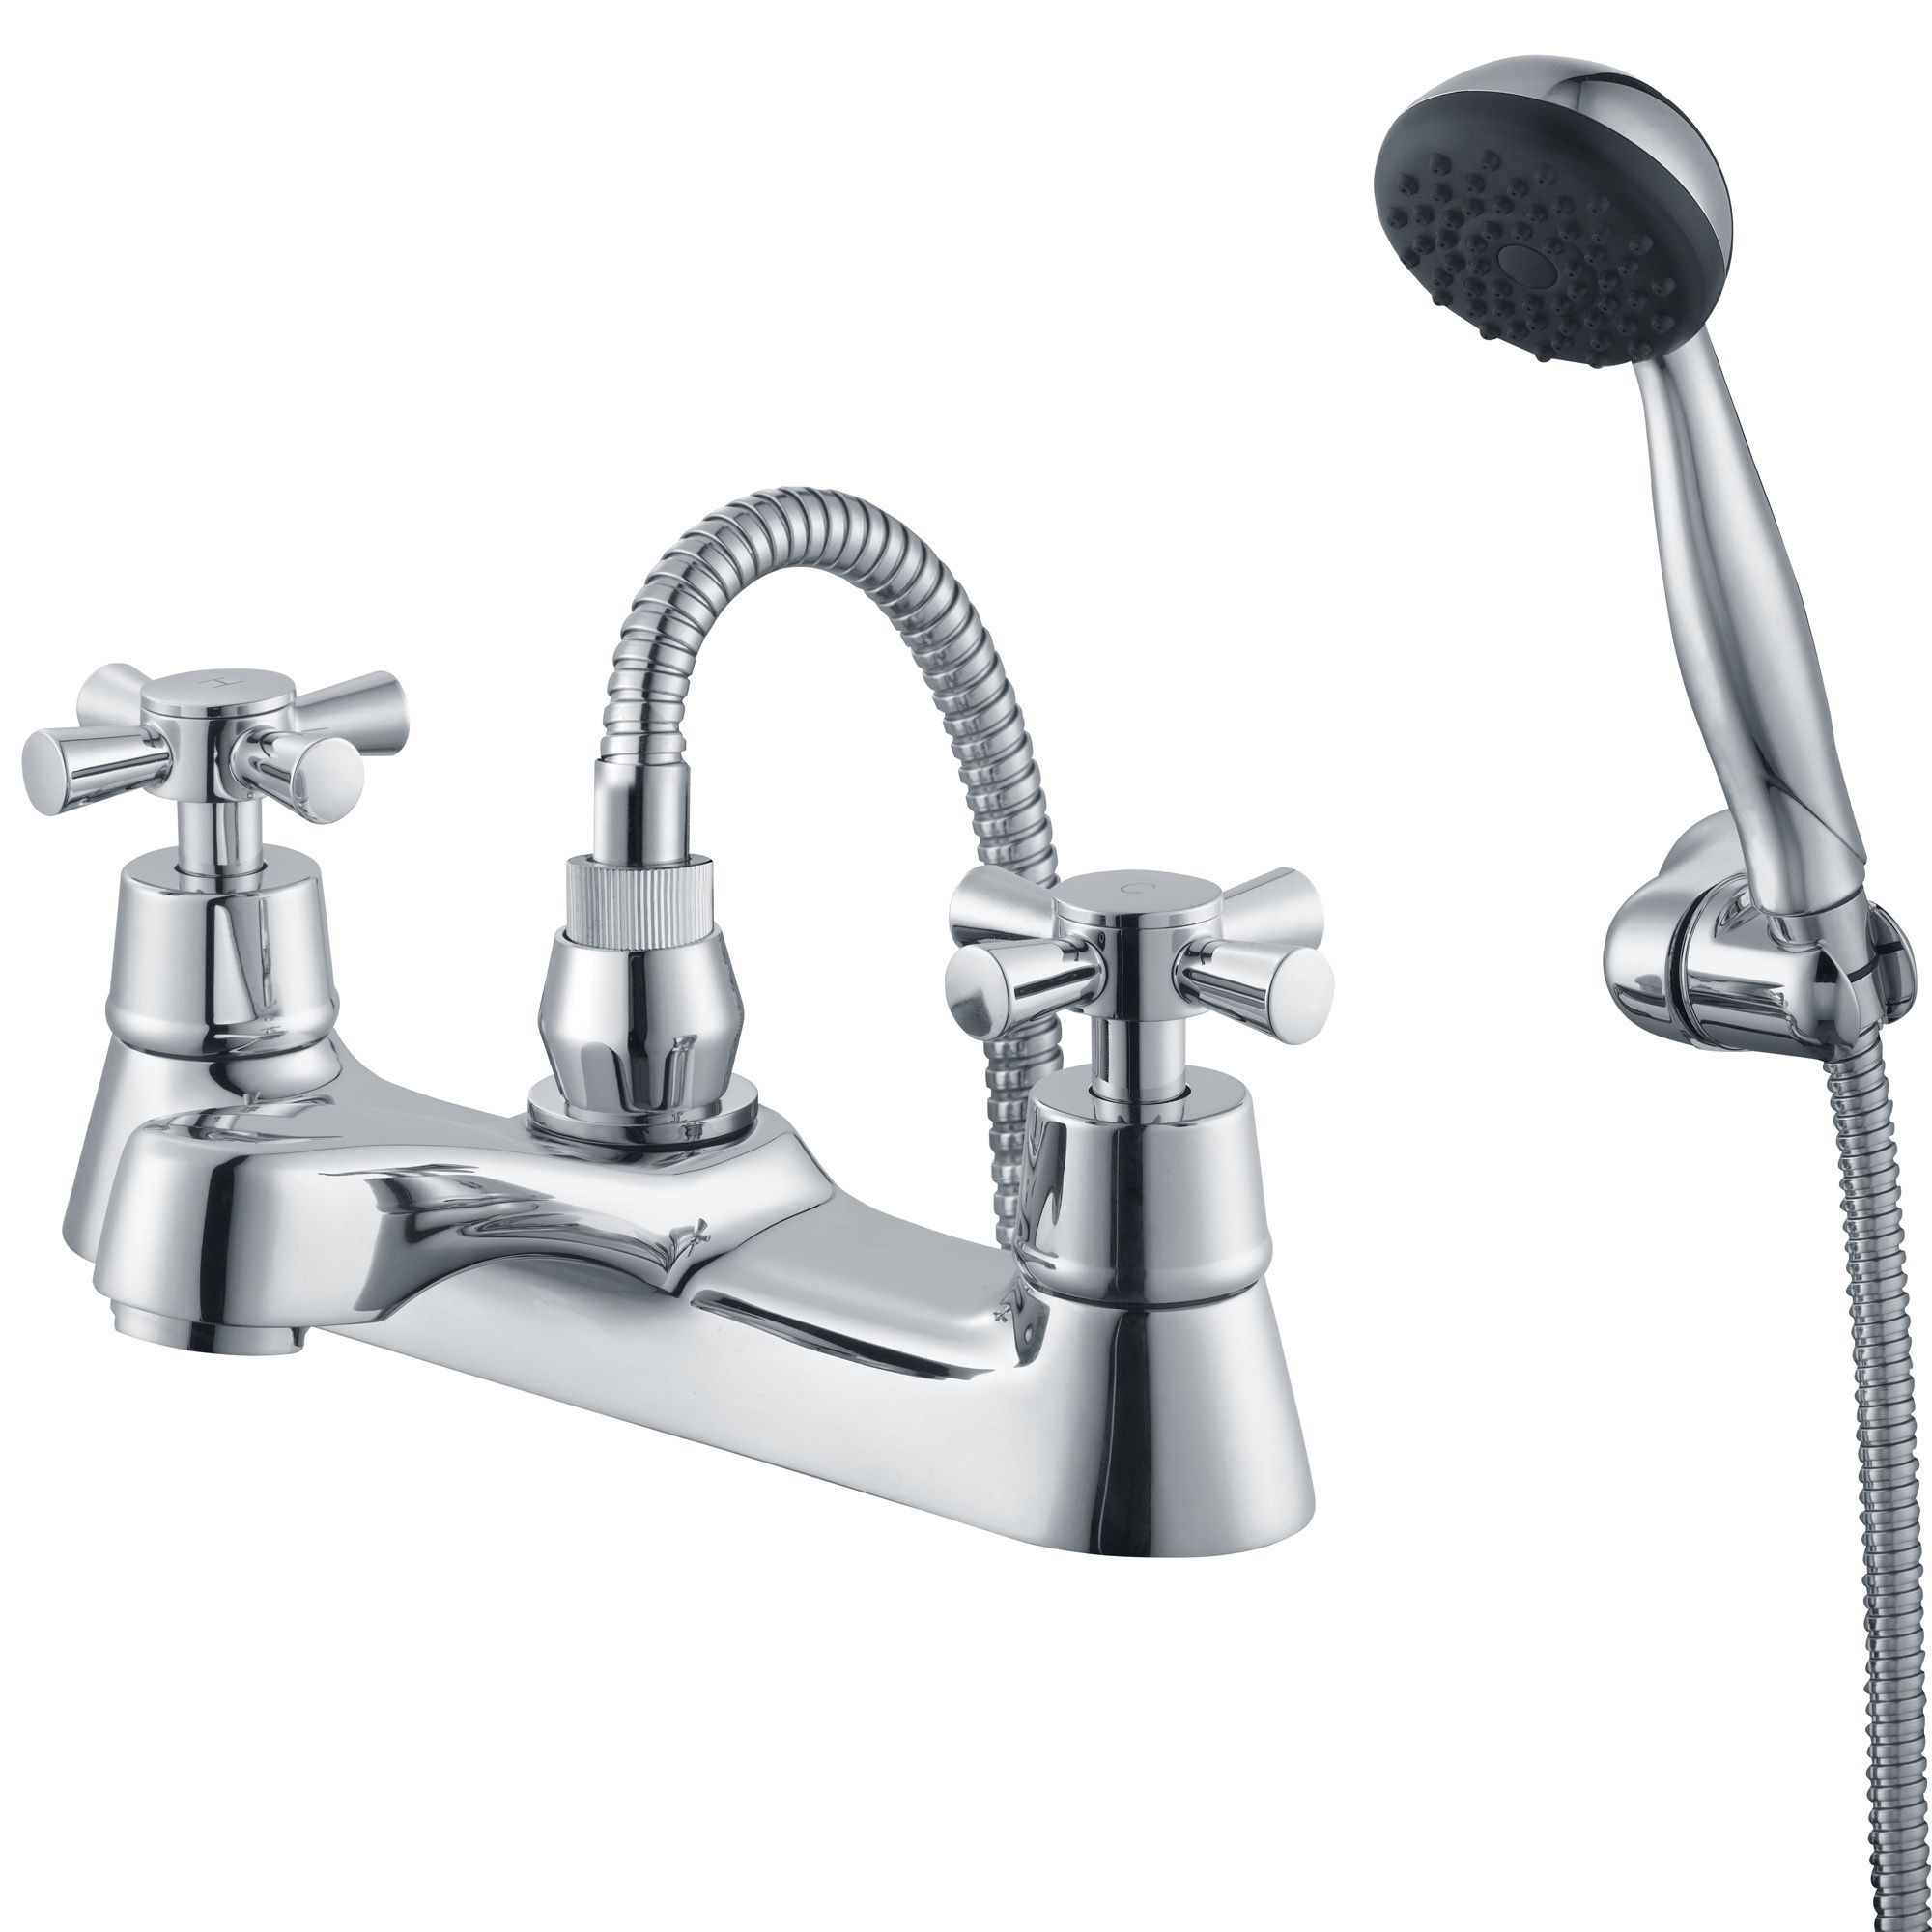 plumbsure crystal chrome bath shower mixer tap departments diy plumbsure crystal chrome bath shower mixer tap departments diy at b q